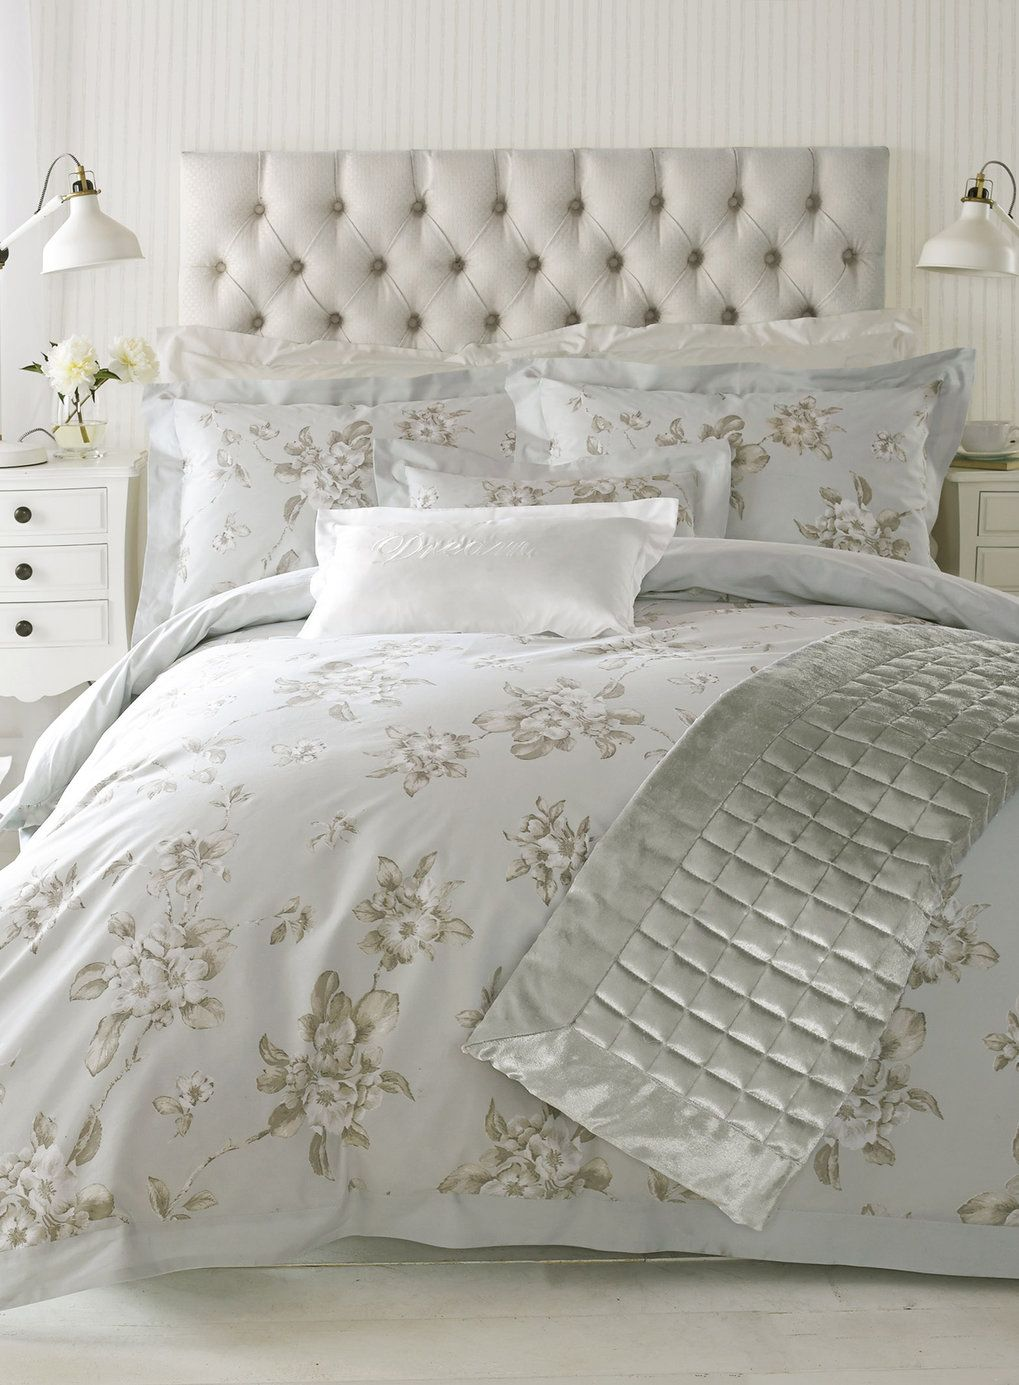 Holly Willoughby Blue Abelle Bedding Bedroom Pinterest Holly - White bedroom furniture bhs